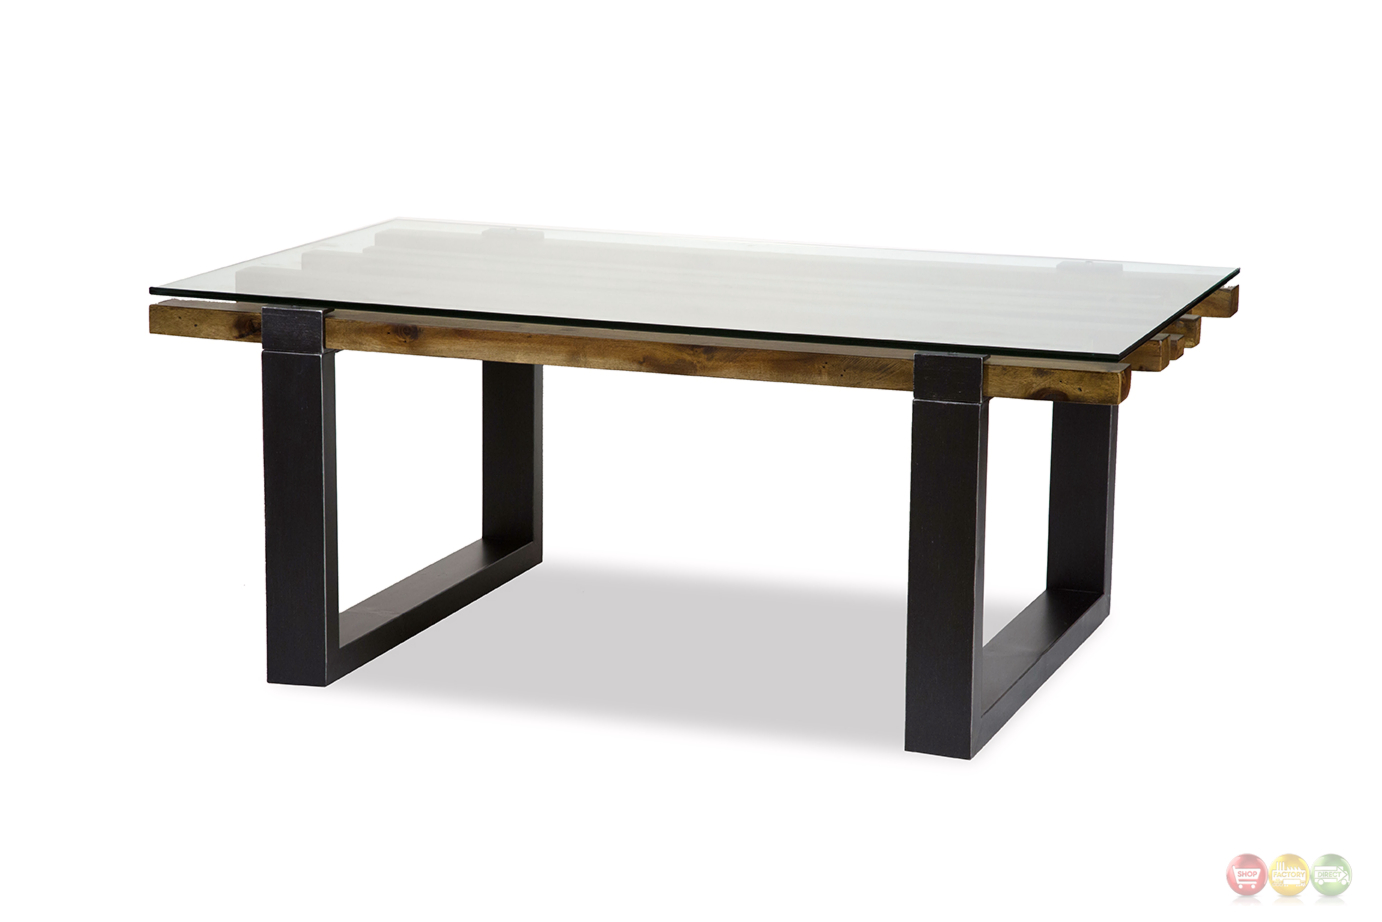 Keystone Rustic Modern Mahogany Coffee Table W Stylish Wood Glass Top